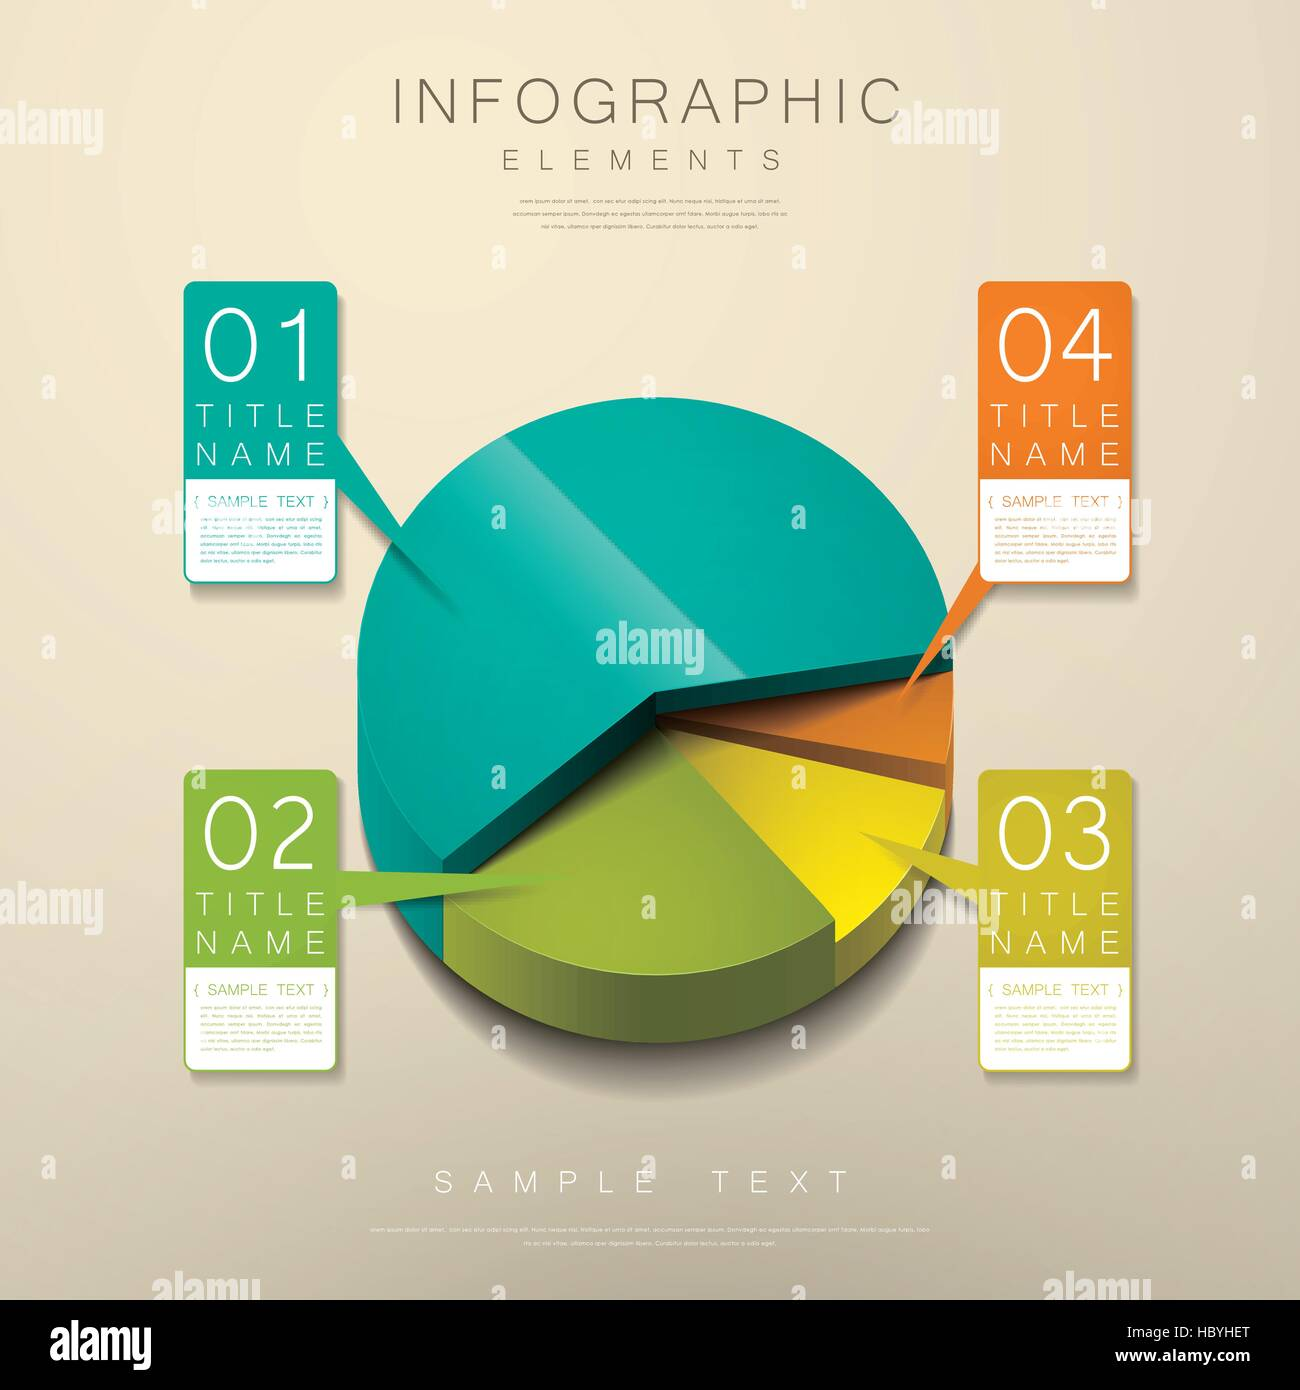 Realistic vector abstract 3d pie chart infographic elements stock realistic vector abstract 3d pie chart infographic elements nvjuhfo Choice Image